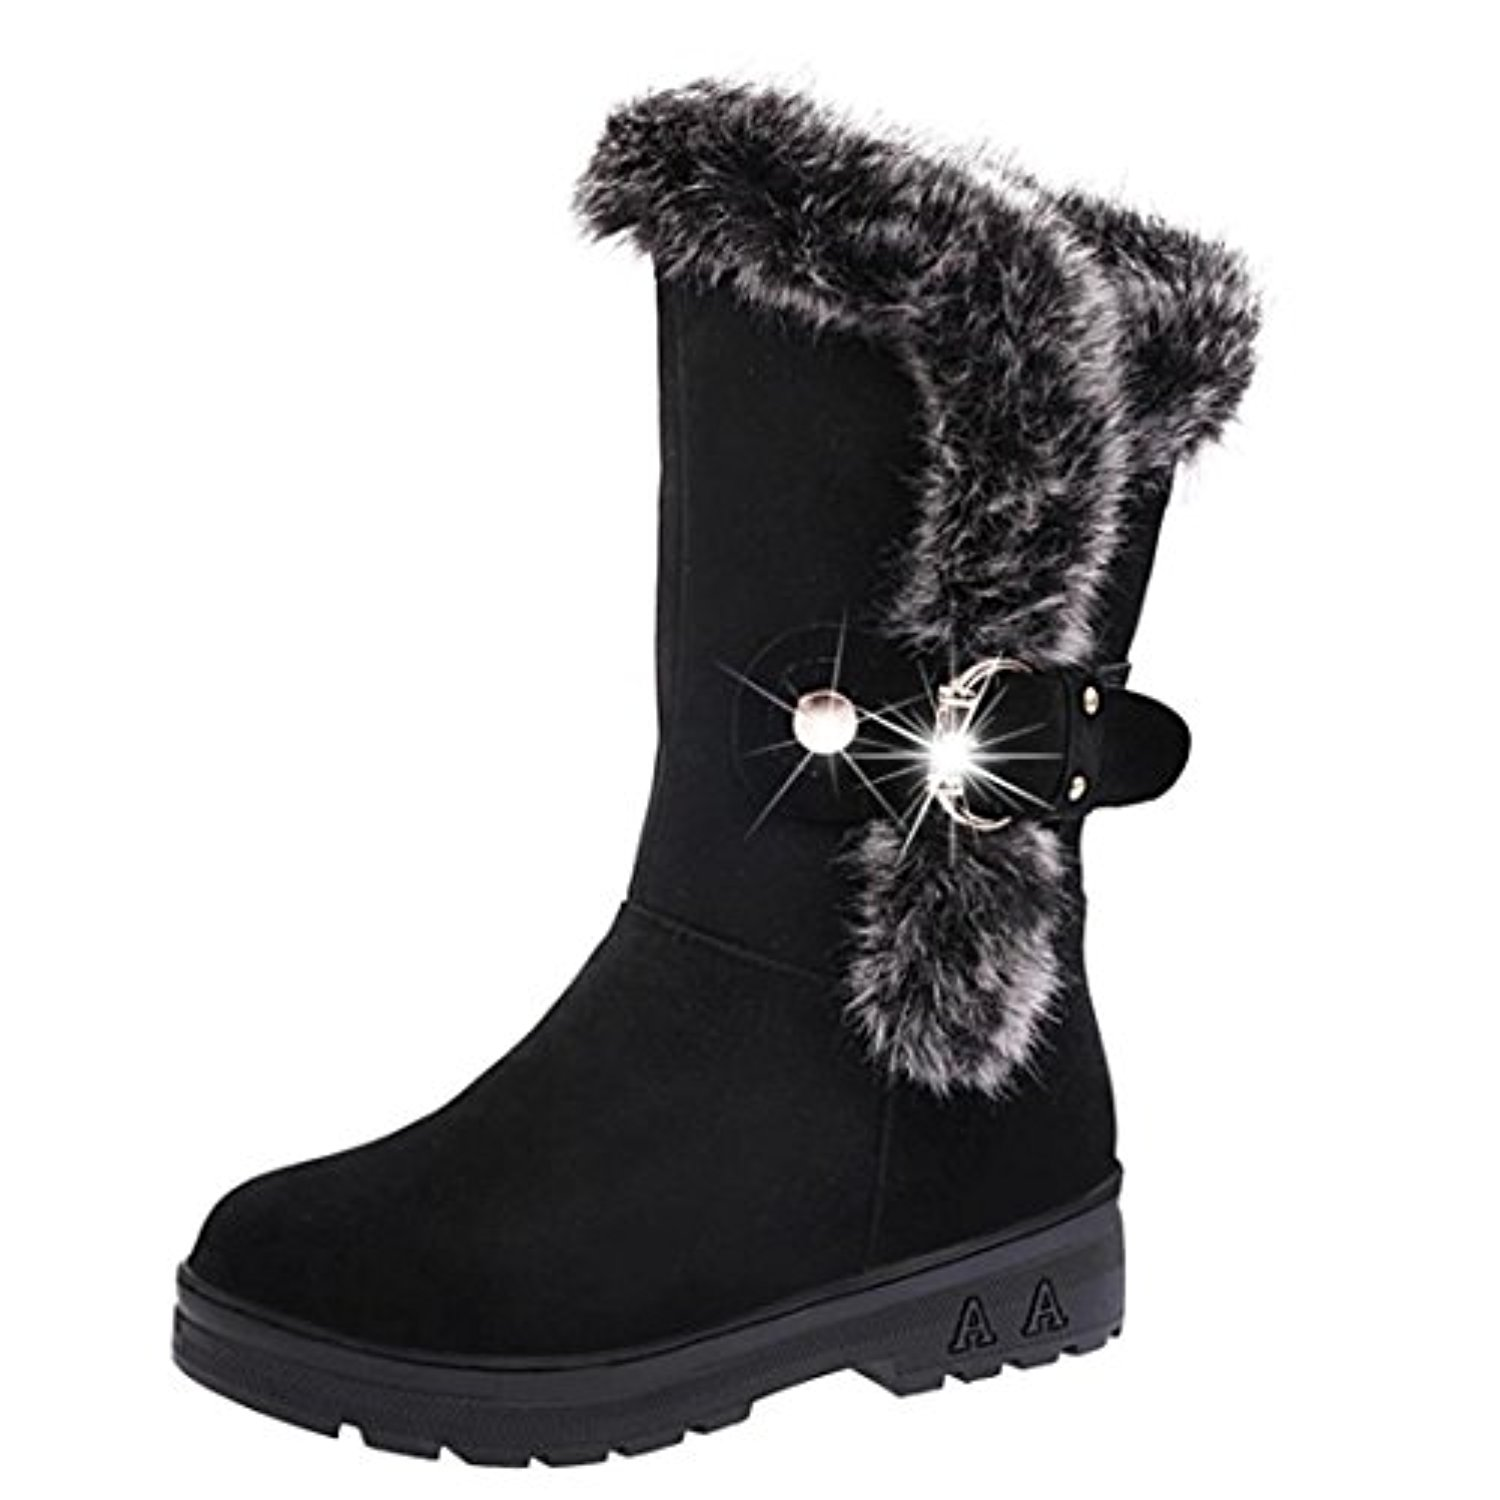 bottes de neige femmes chaussures bottes cuissardes d 39 hiver bottes fourr es femmes bottes slip. Black Bedroom Furniture Sets. Home Design Ideas